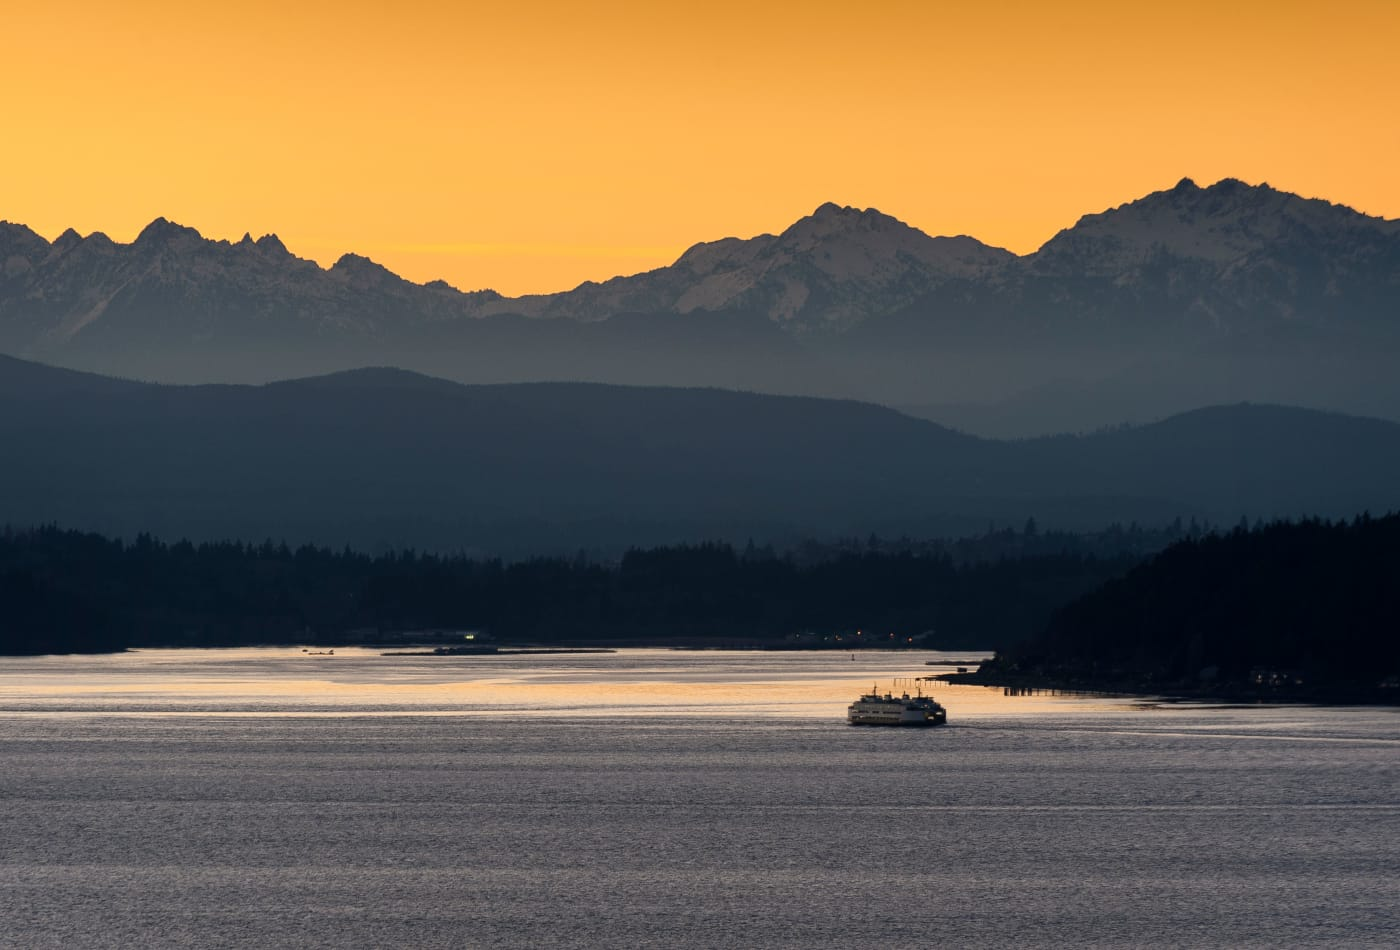 Sun setting behind mountains in Bremerton, WA